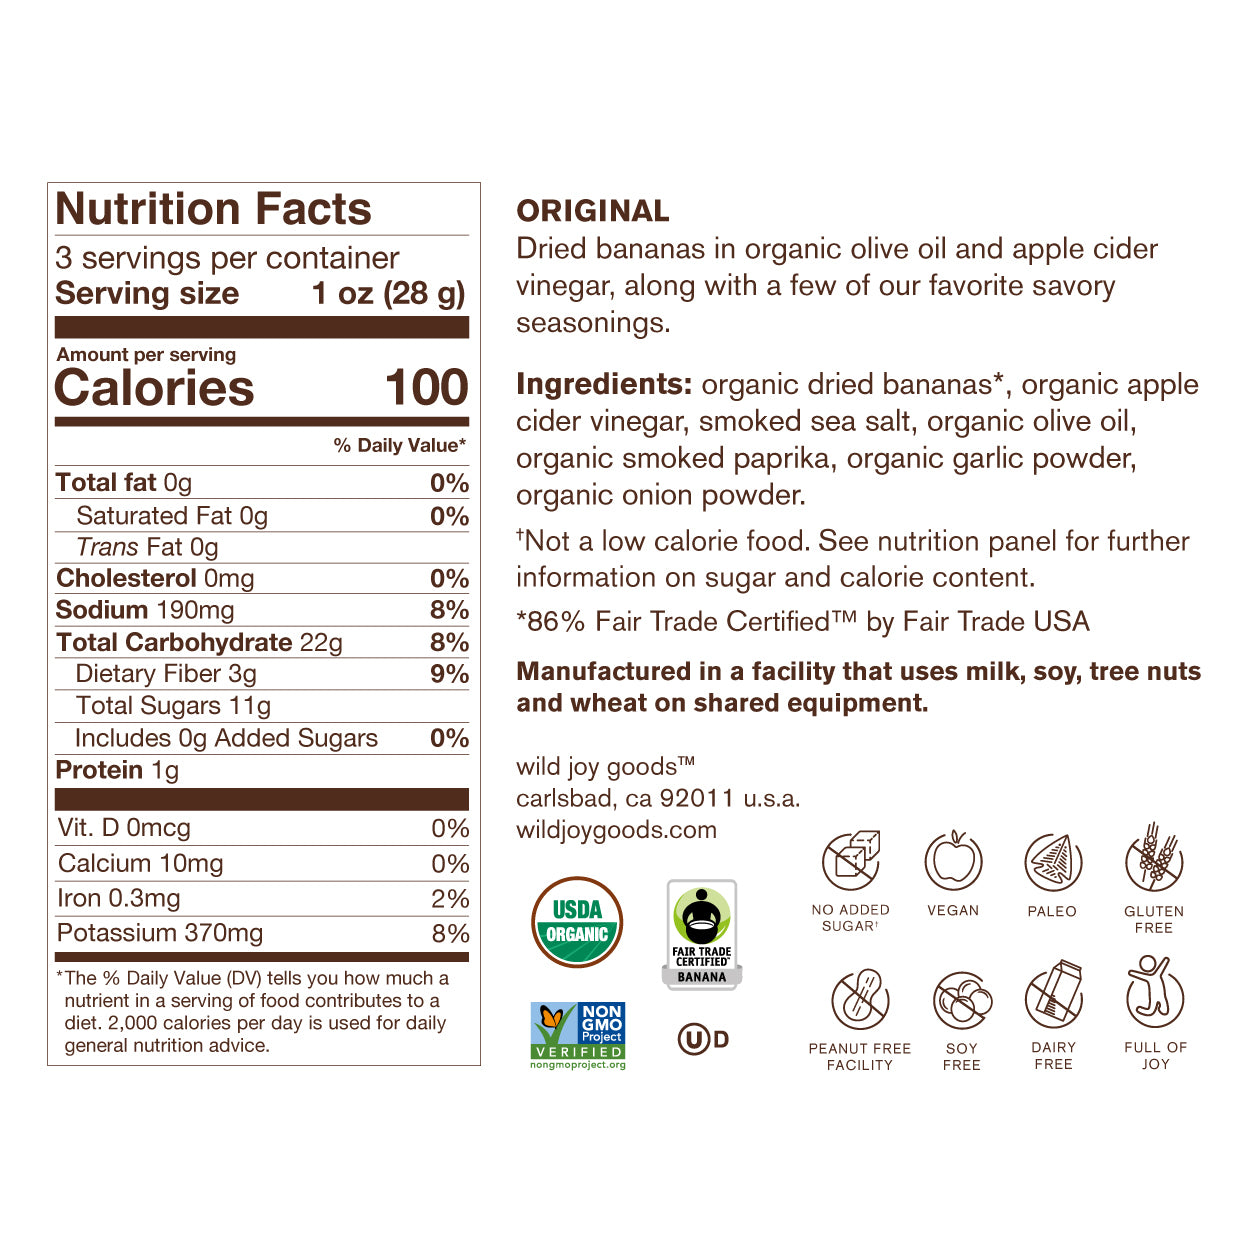 Original Nutrition Facts